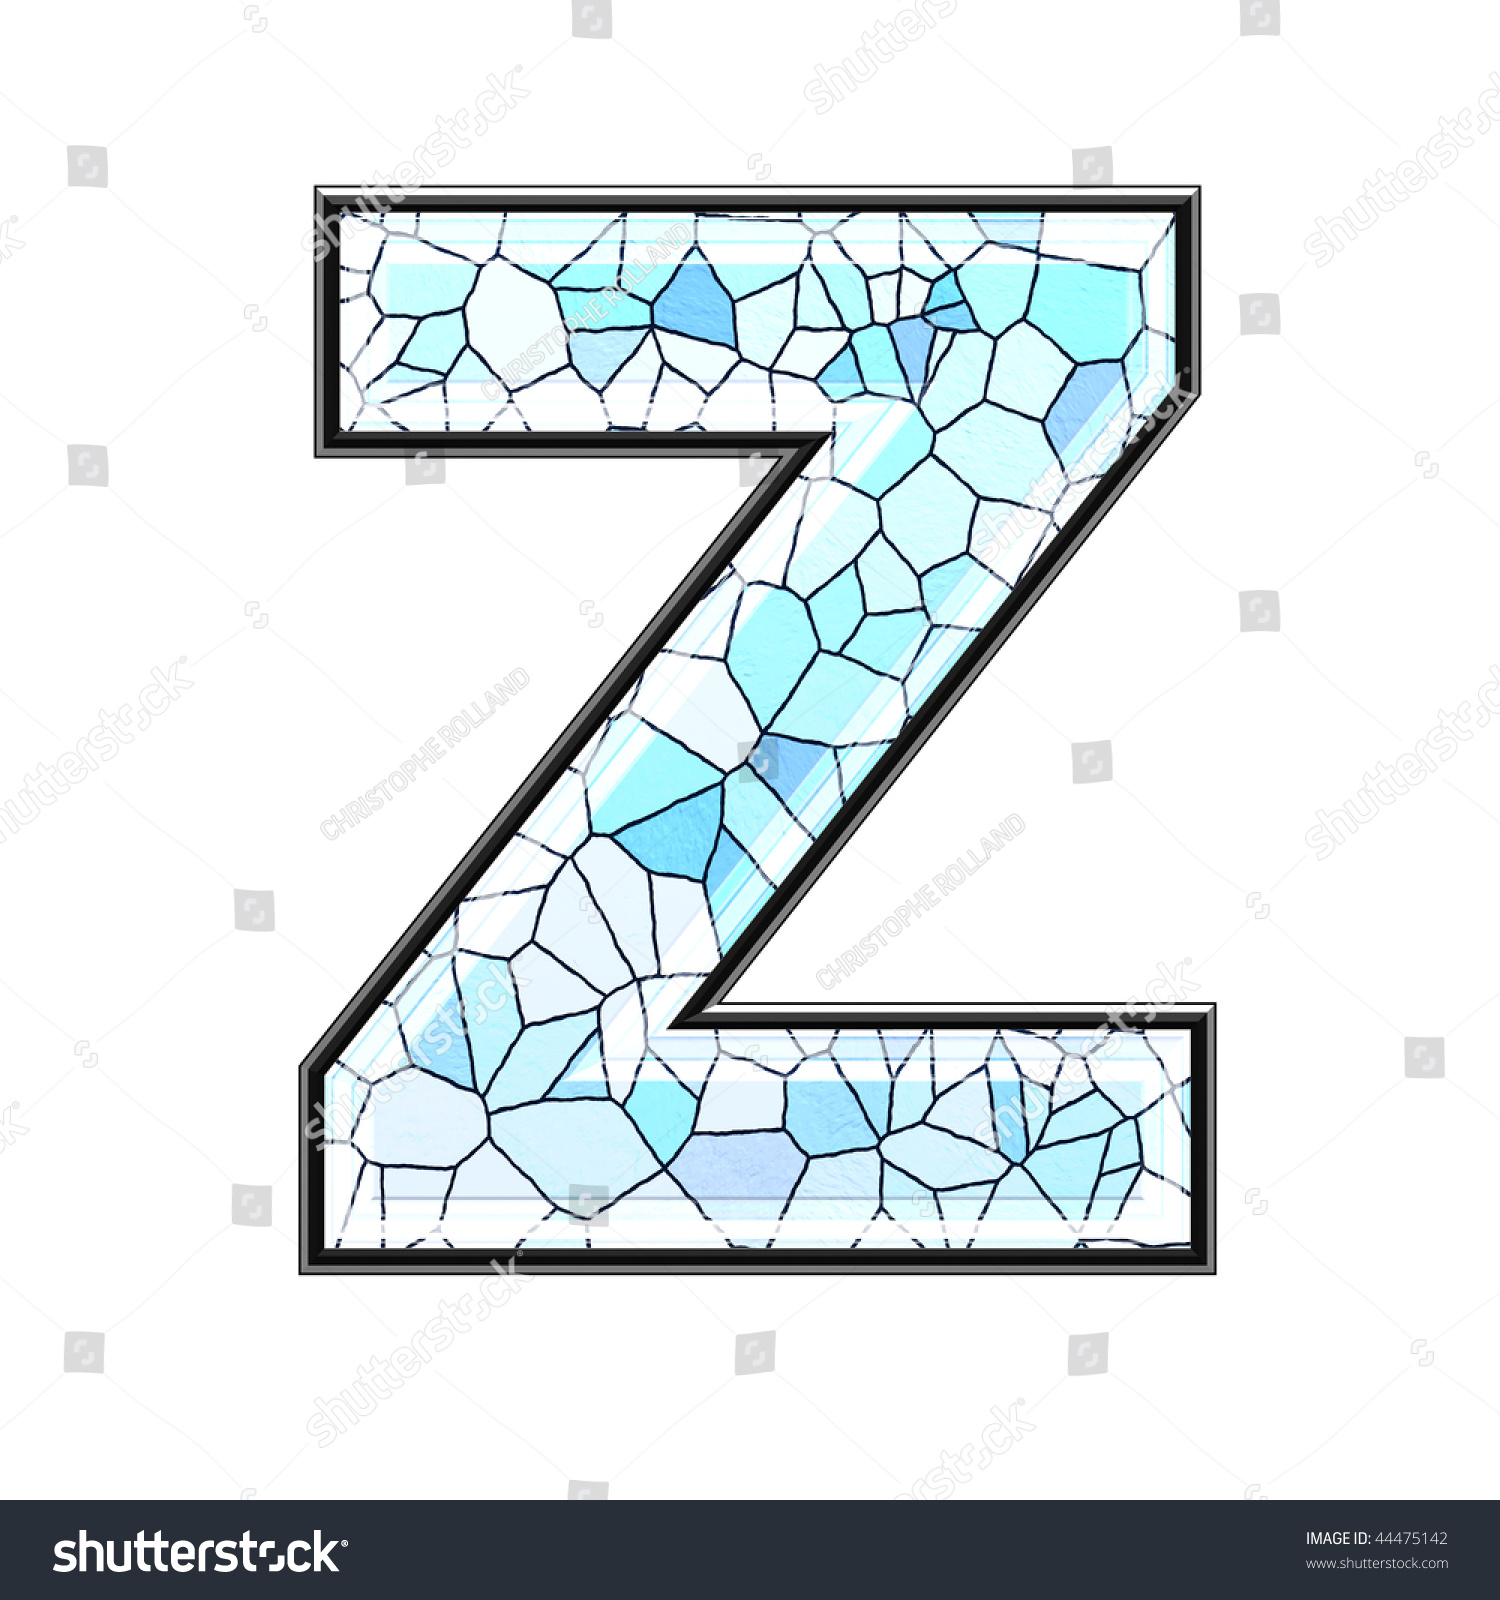 Abstract 3d letter ceramic tile texture stock illustration abstract 3d letter with ceramic tile texture z doublecrazyfo Image collections